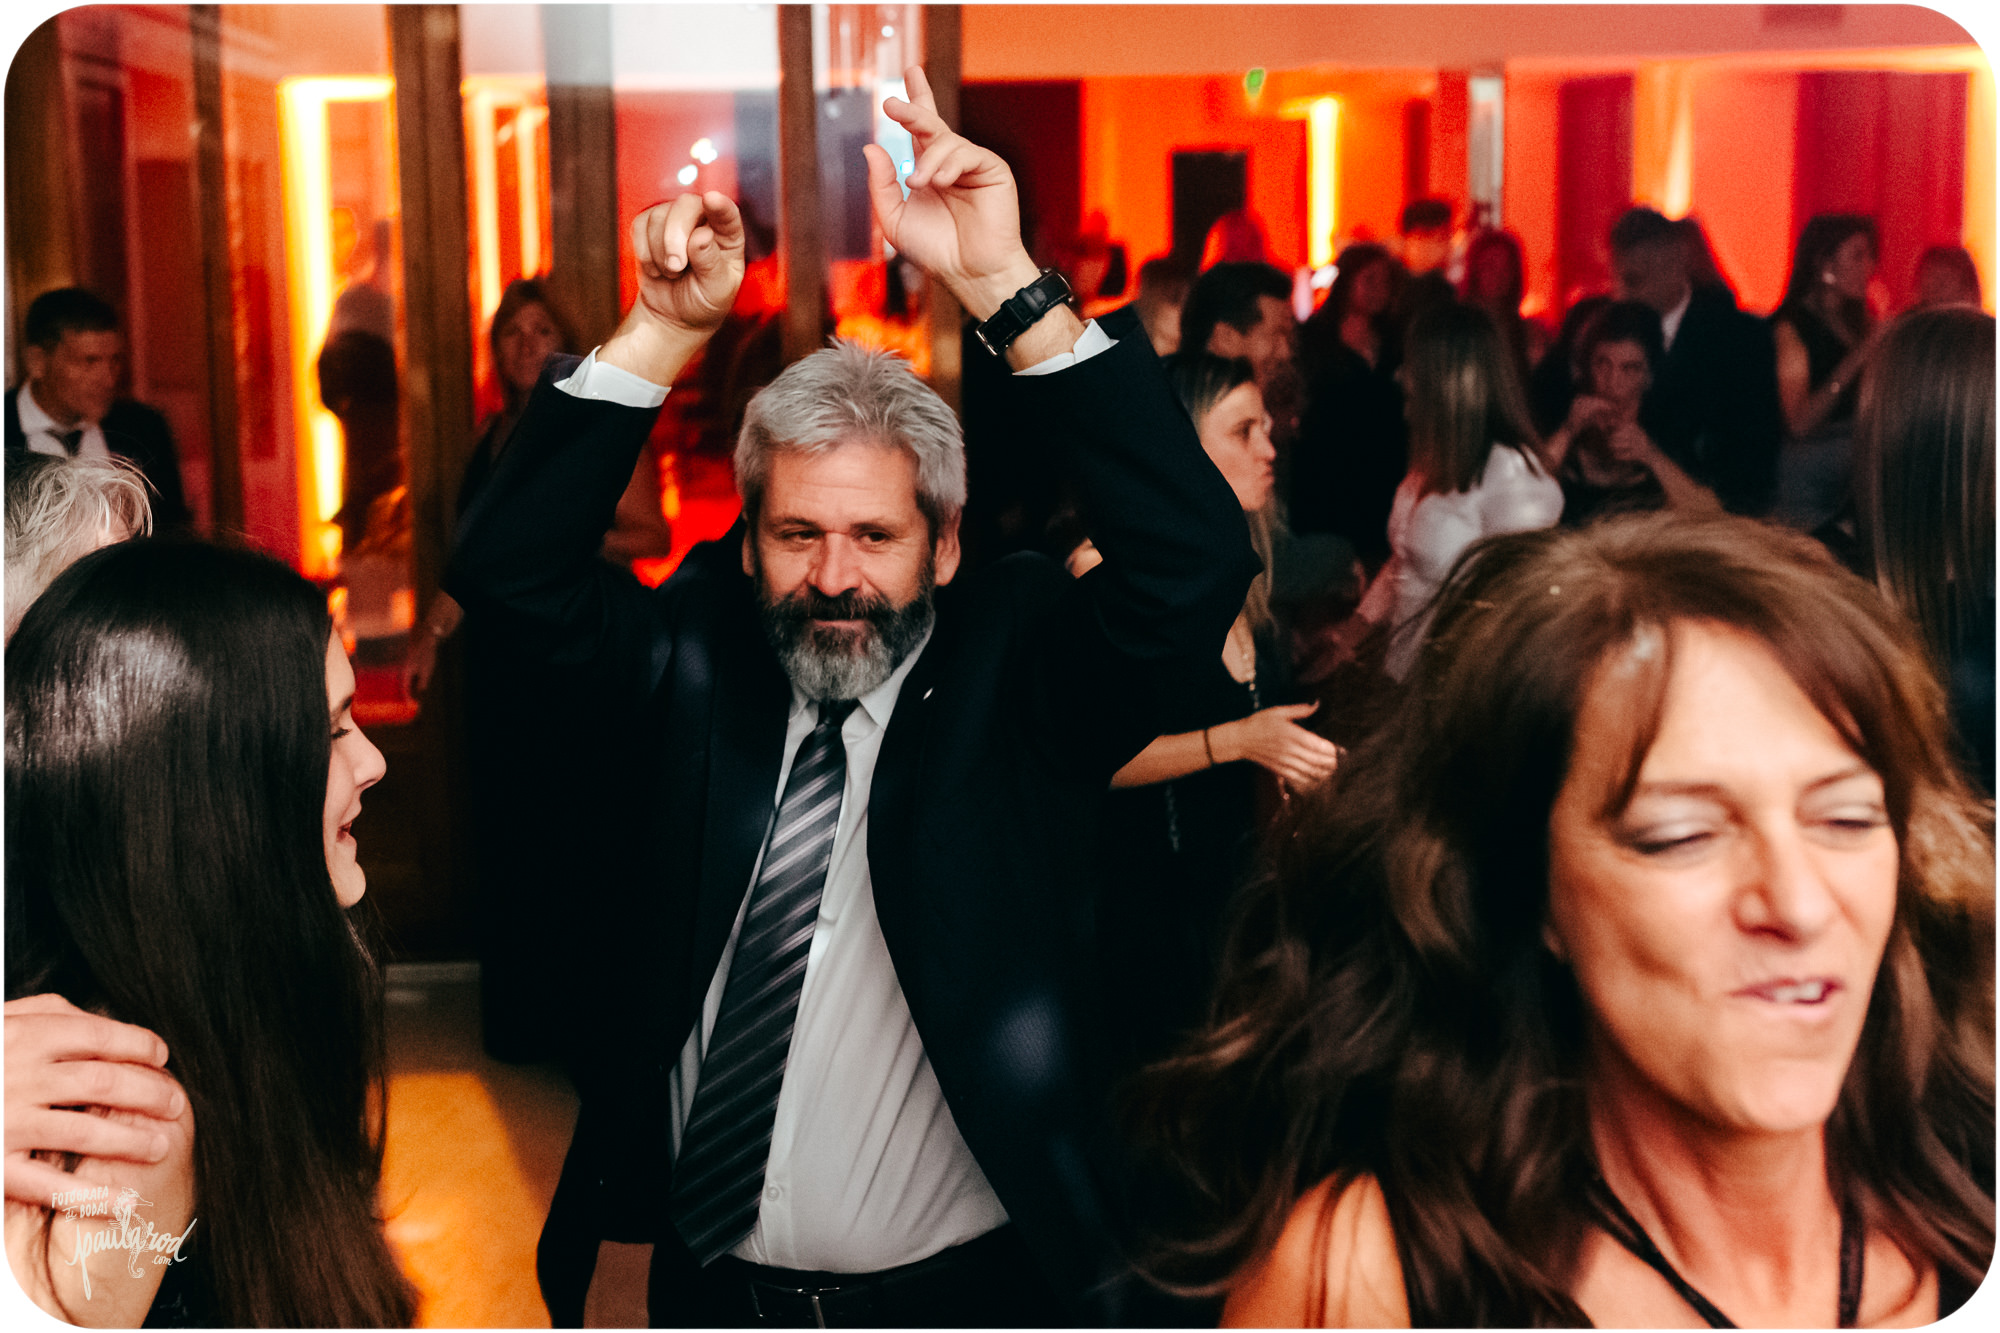 fotografia-documental-para-eventos-sociales-4 (2).jpg